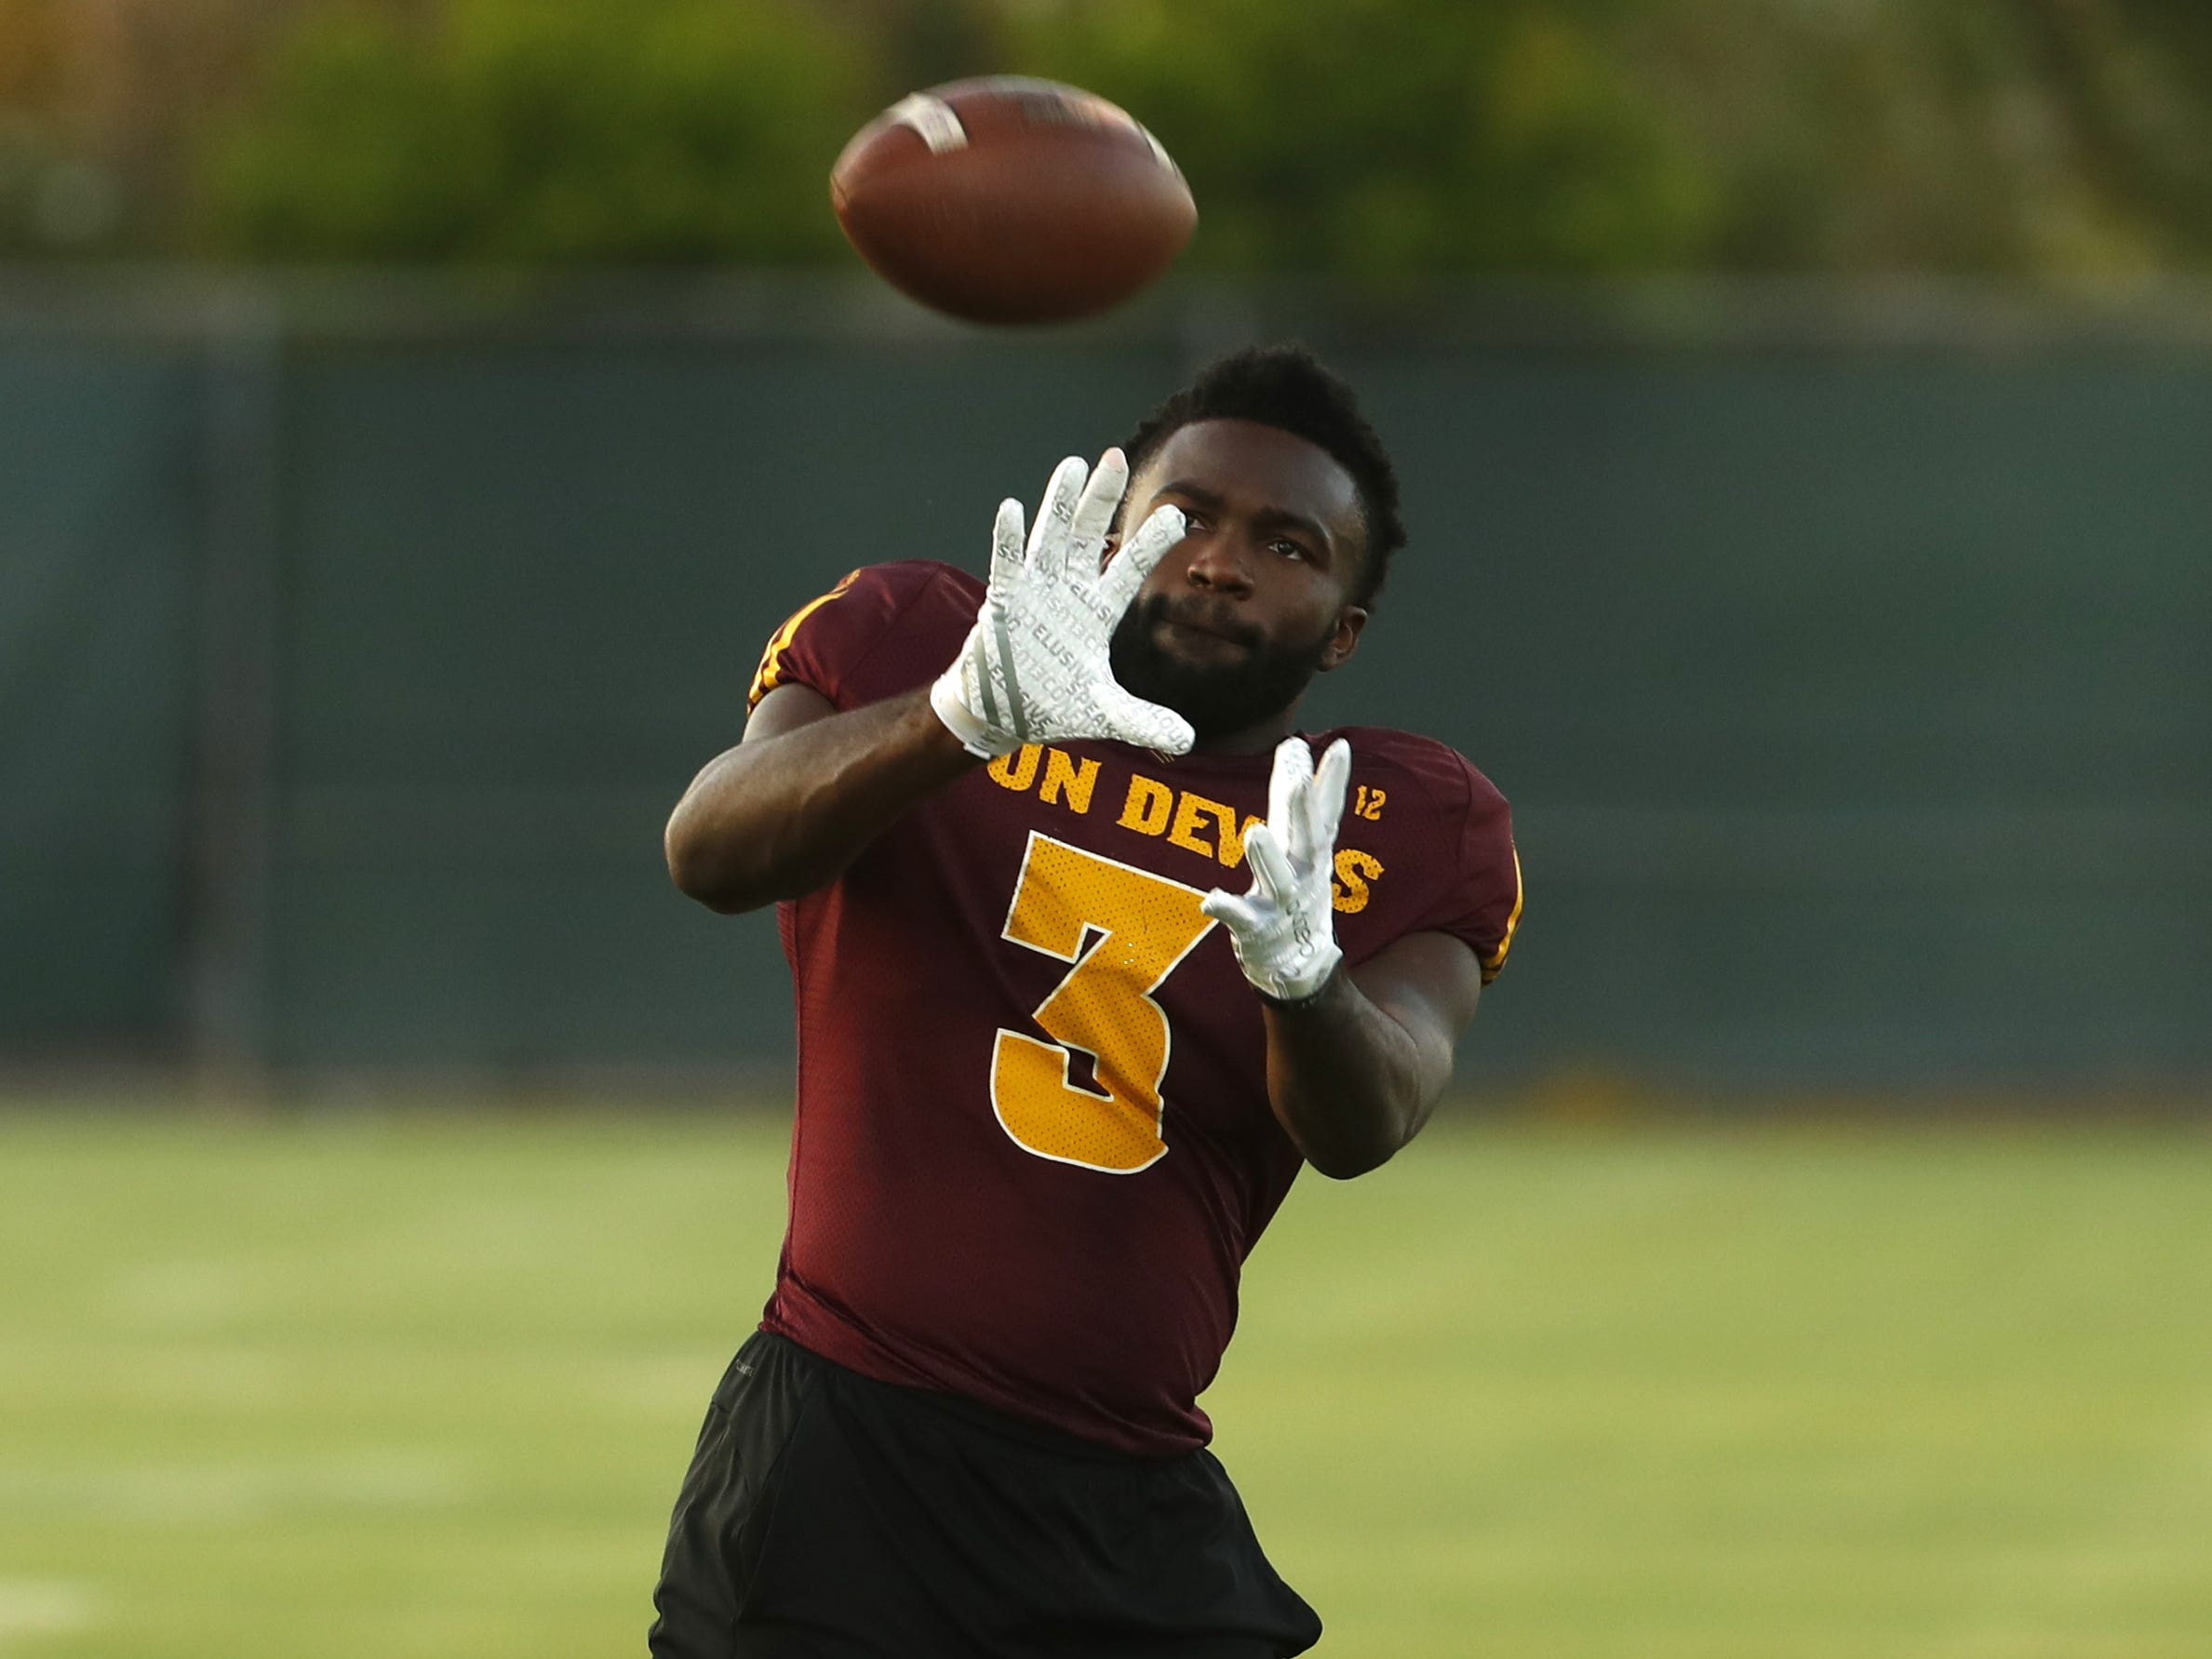 ASU's Eno Benjamin (3) catches a pass during a practice at Kajikawa Football Practice Fields in Tempe, Ariz. on Aug. 6, 2018.